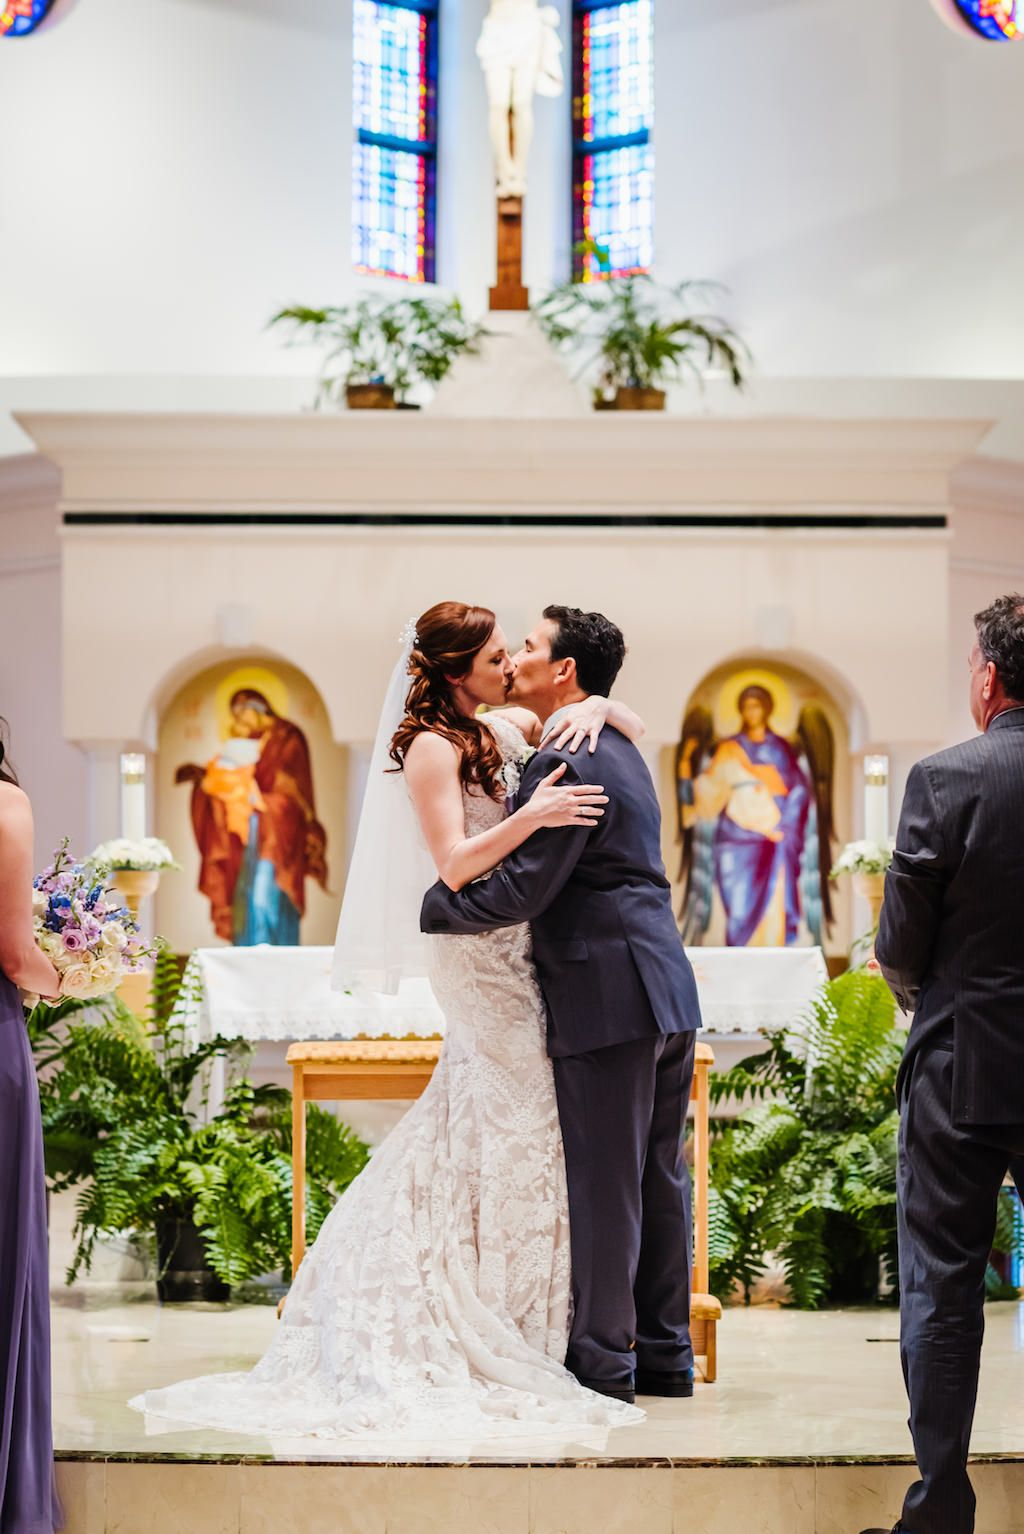 Traditional Church Ceremony First Kiss Wedding Portrait | St Pete Ceremony Venue St. Raphael's Catholic Church